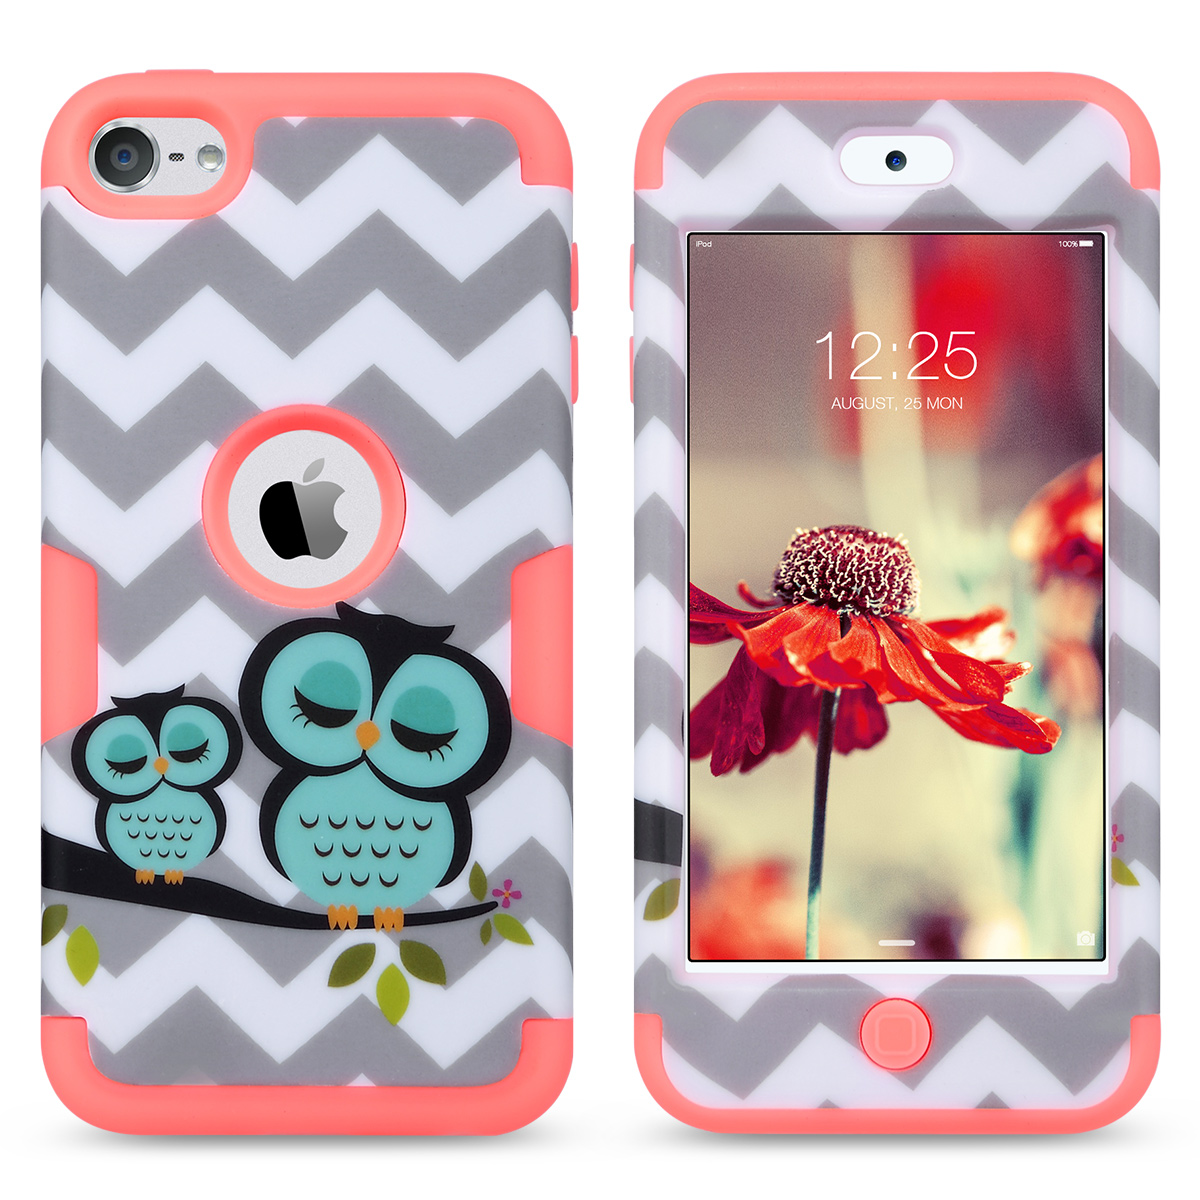 Hybrid-Hard-Protective-Silicon-TPU-Case-for-Apple-iPod-Touch-5-6th-Generation thumbnail 133